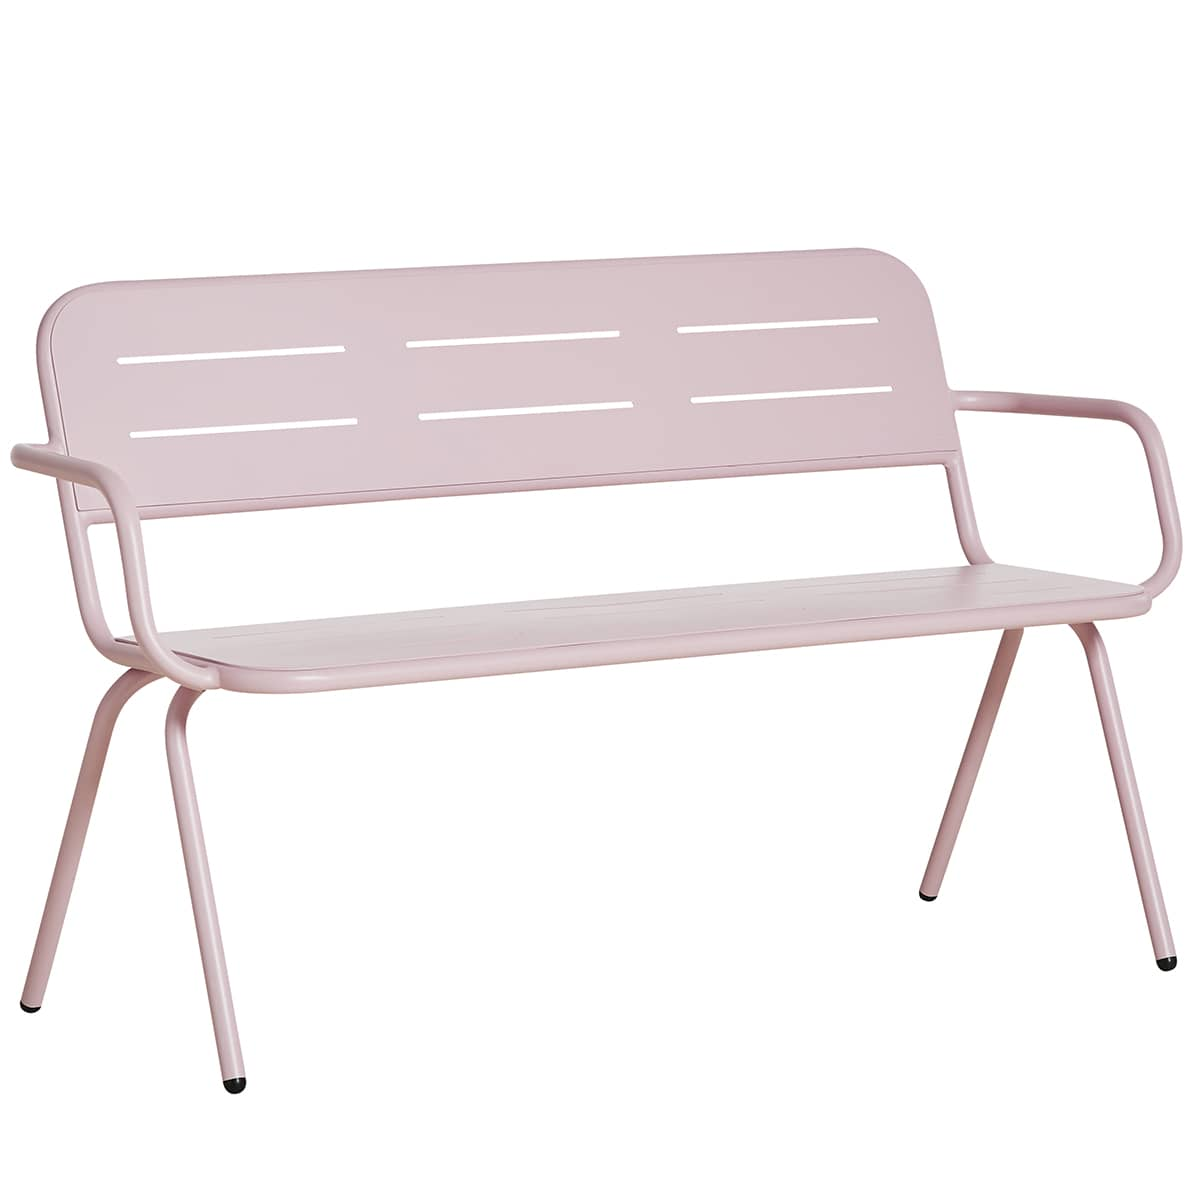 RAY outdoor bench with armrests, designed by WOUD